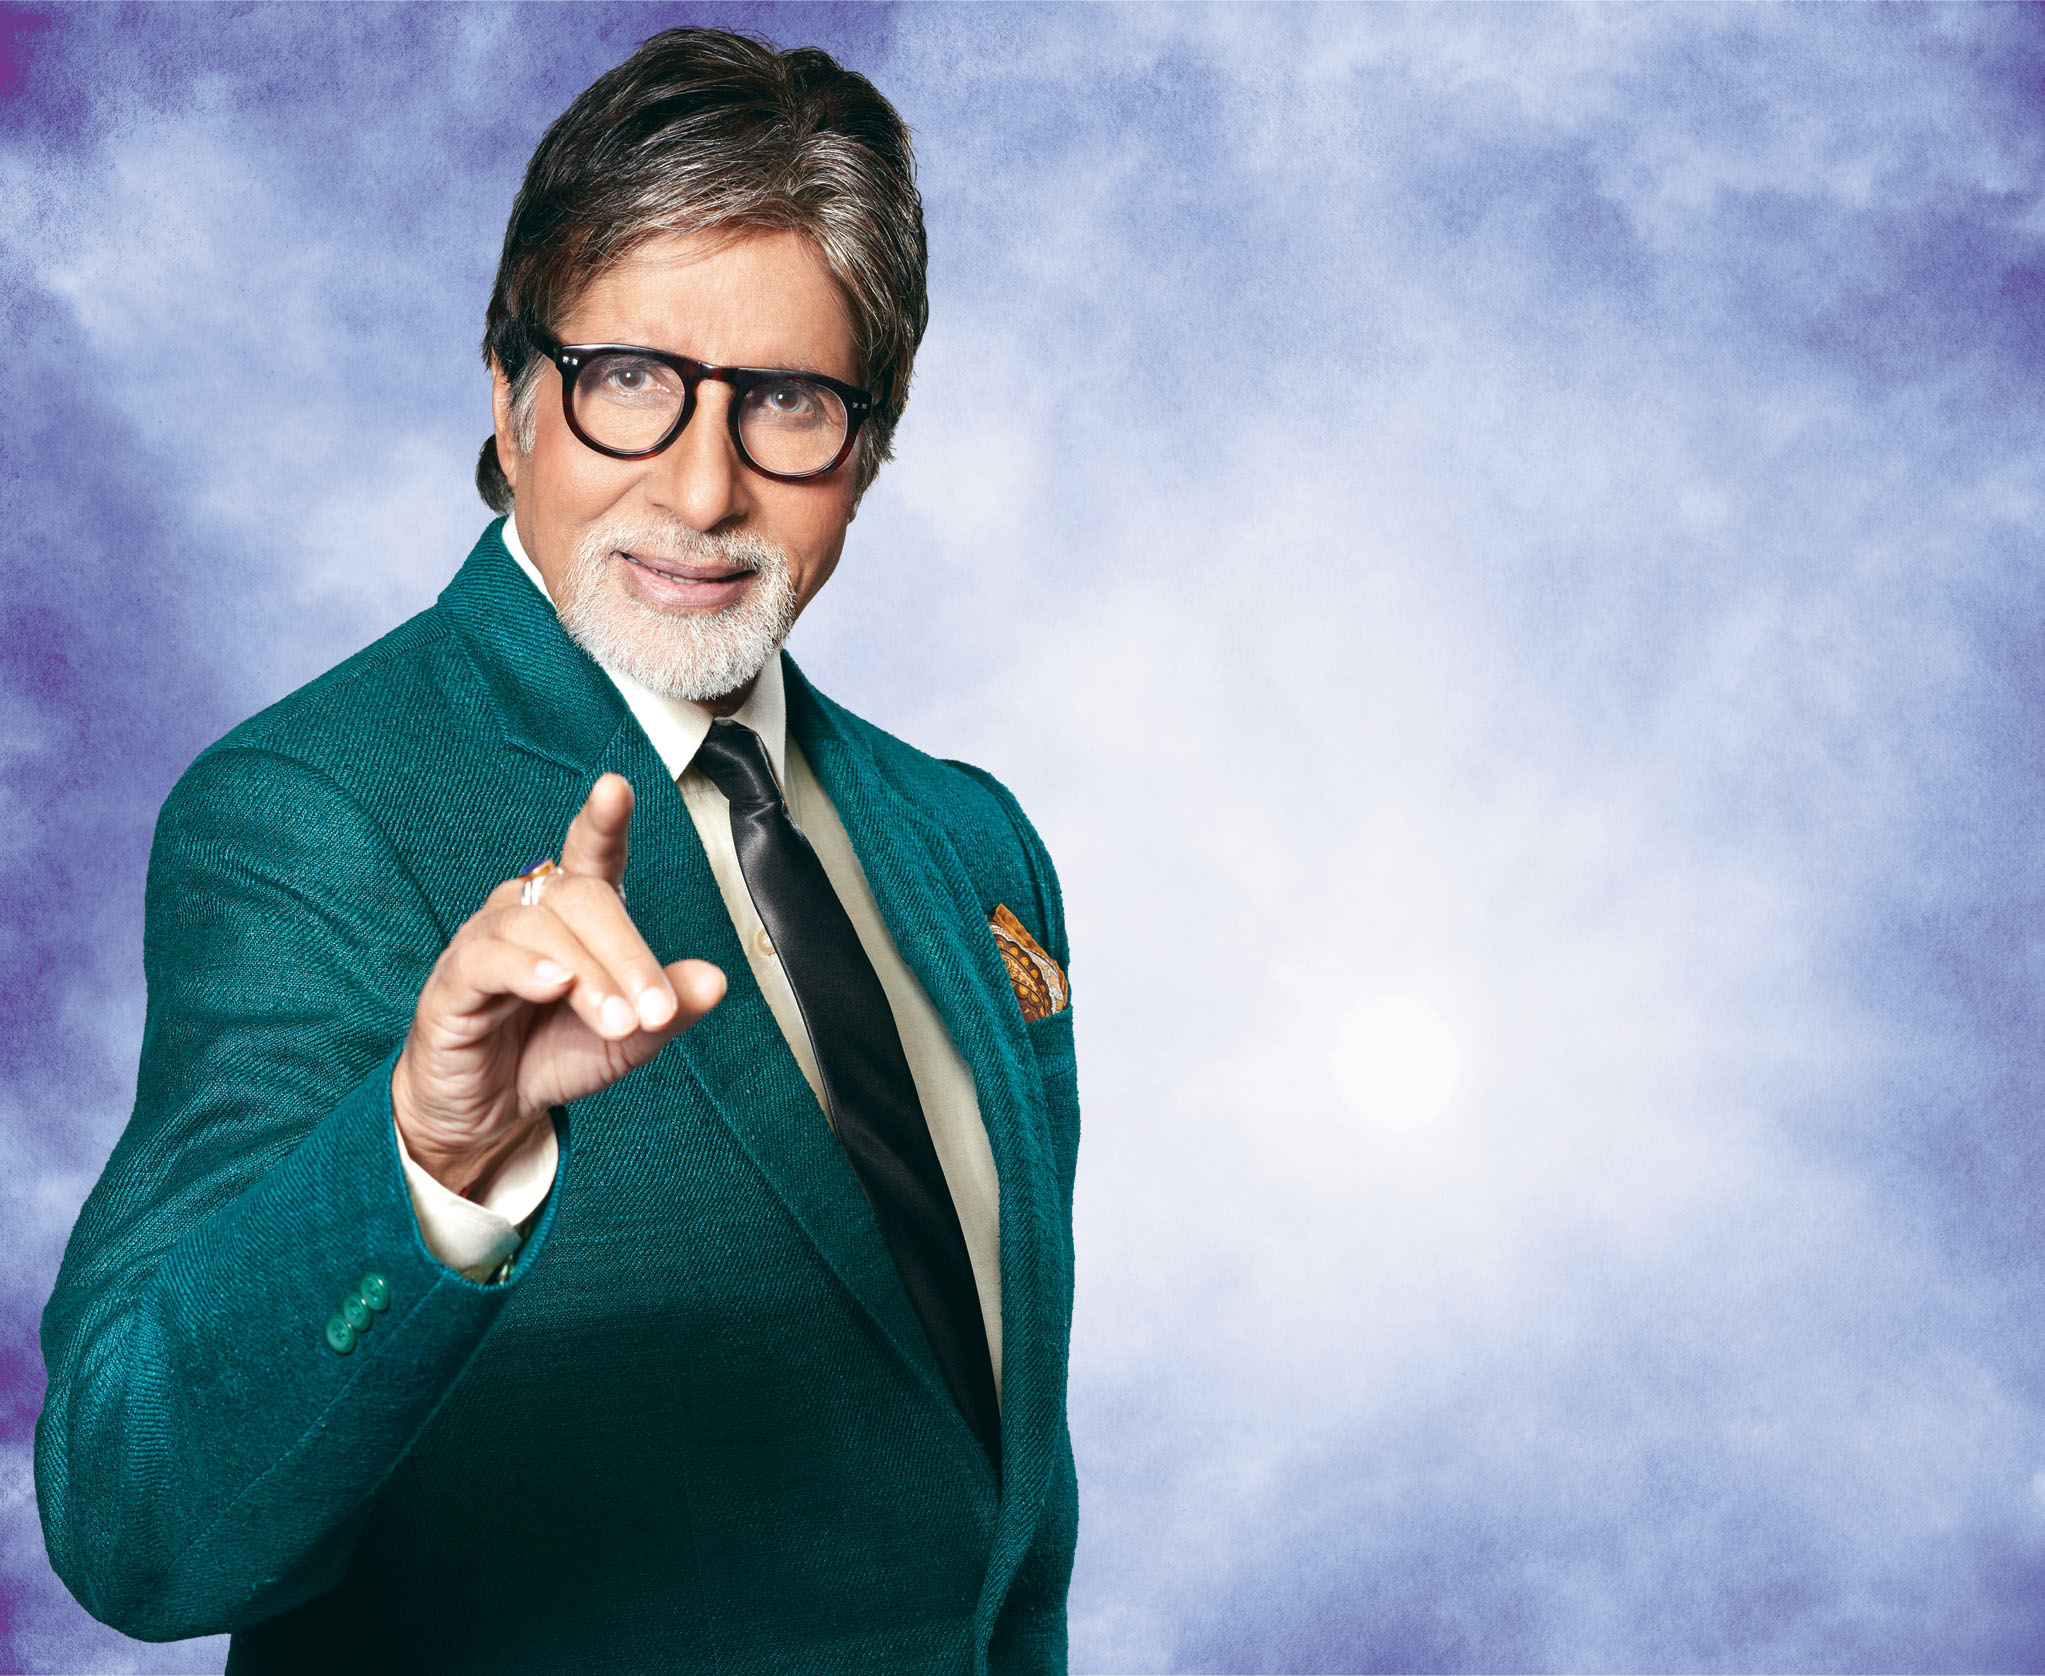 Amitabh Bachchan HD Wallpapers | 7wallpapers net